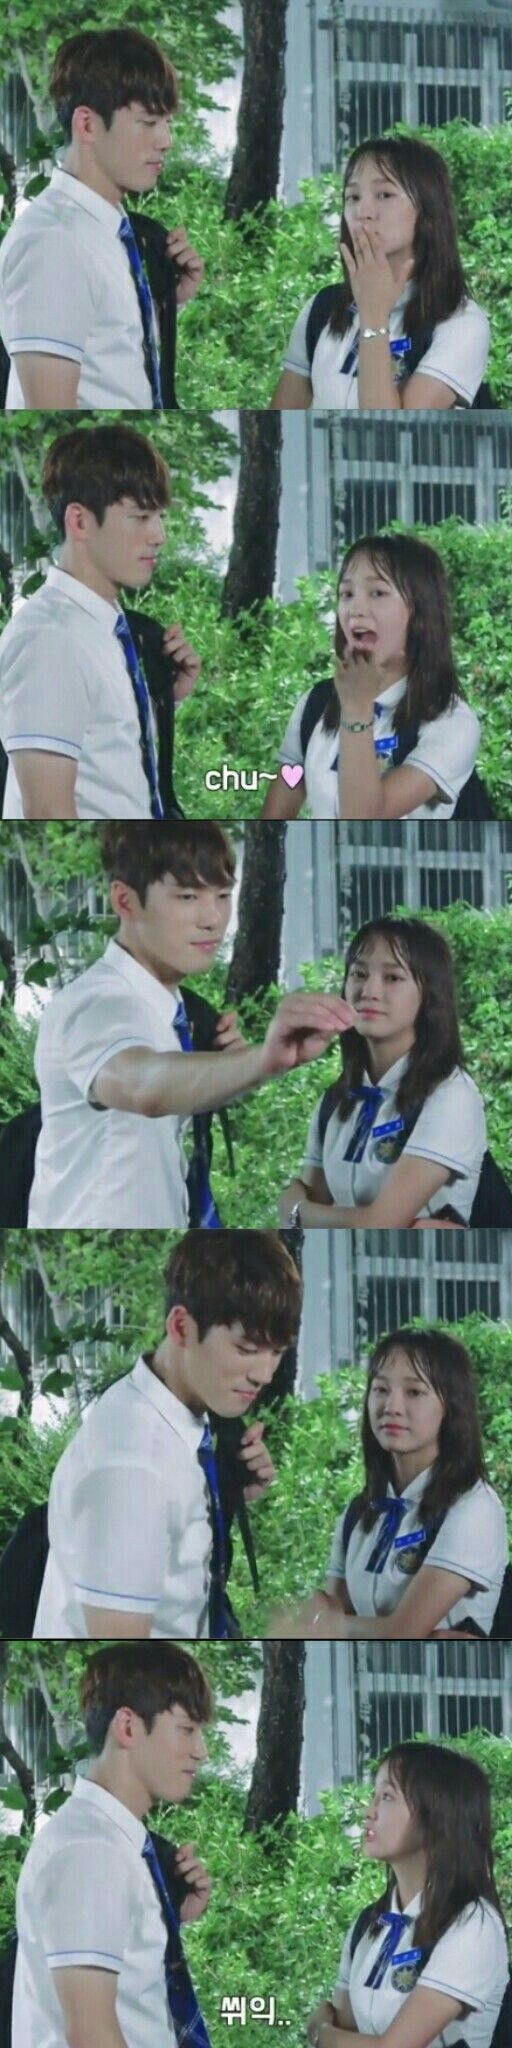 Sweetness of Kim Se Jeaong and Kim jung Hyun in School 2017 BTS